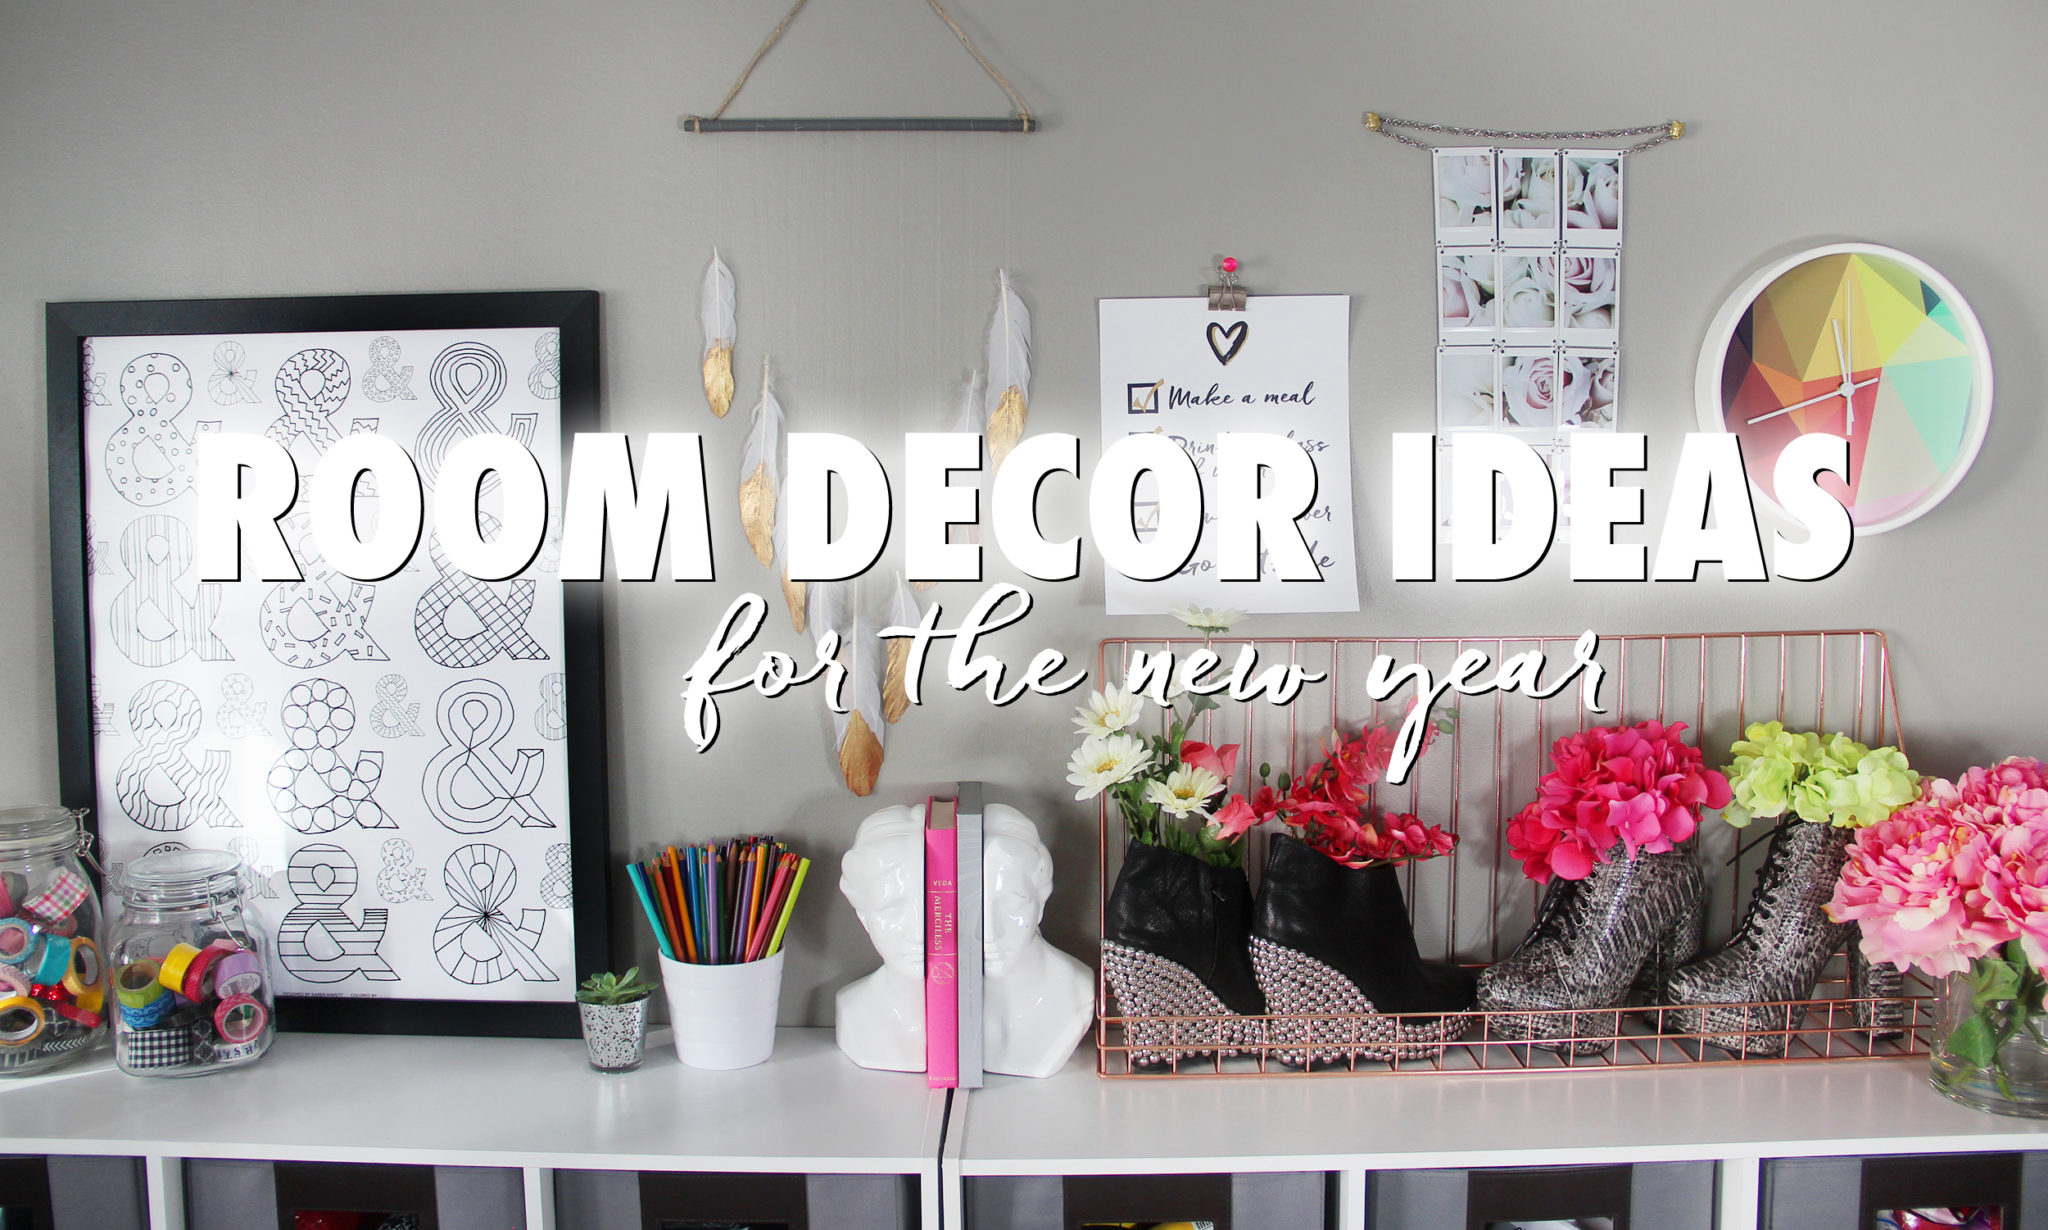 Decoration Room 3 Room Decor Ideas For 2016 43 Free Printable Motivational